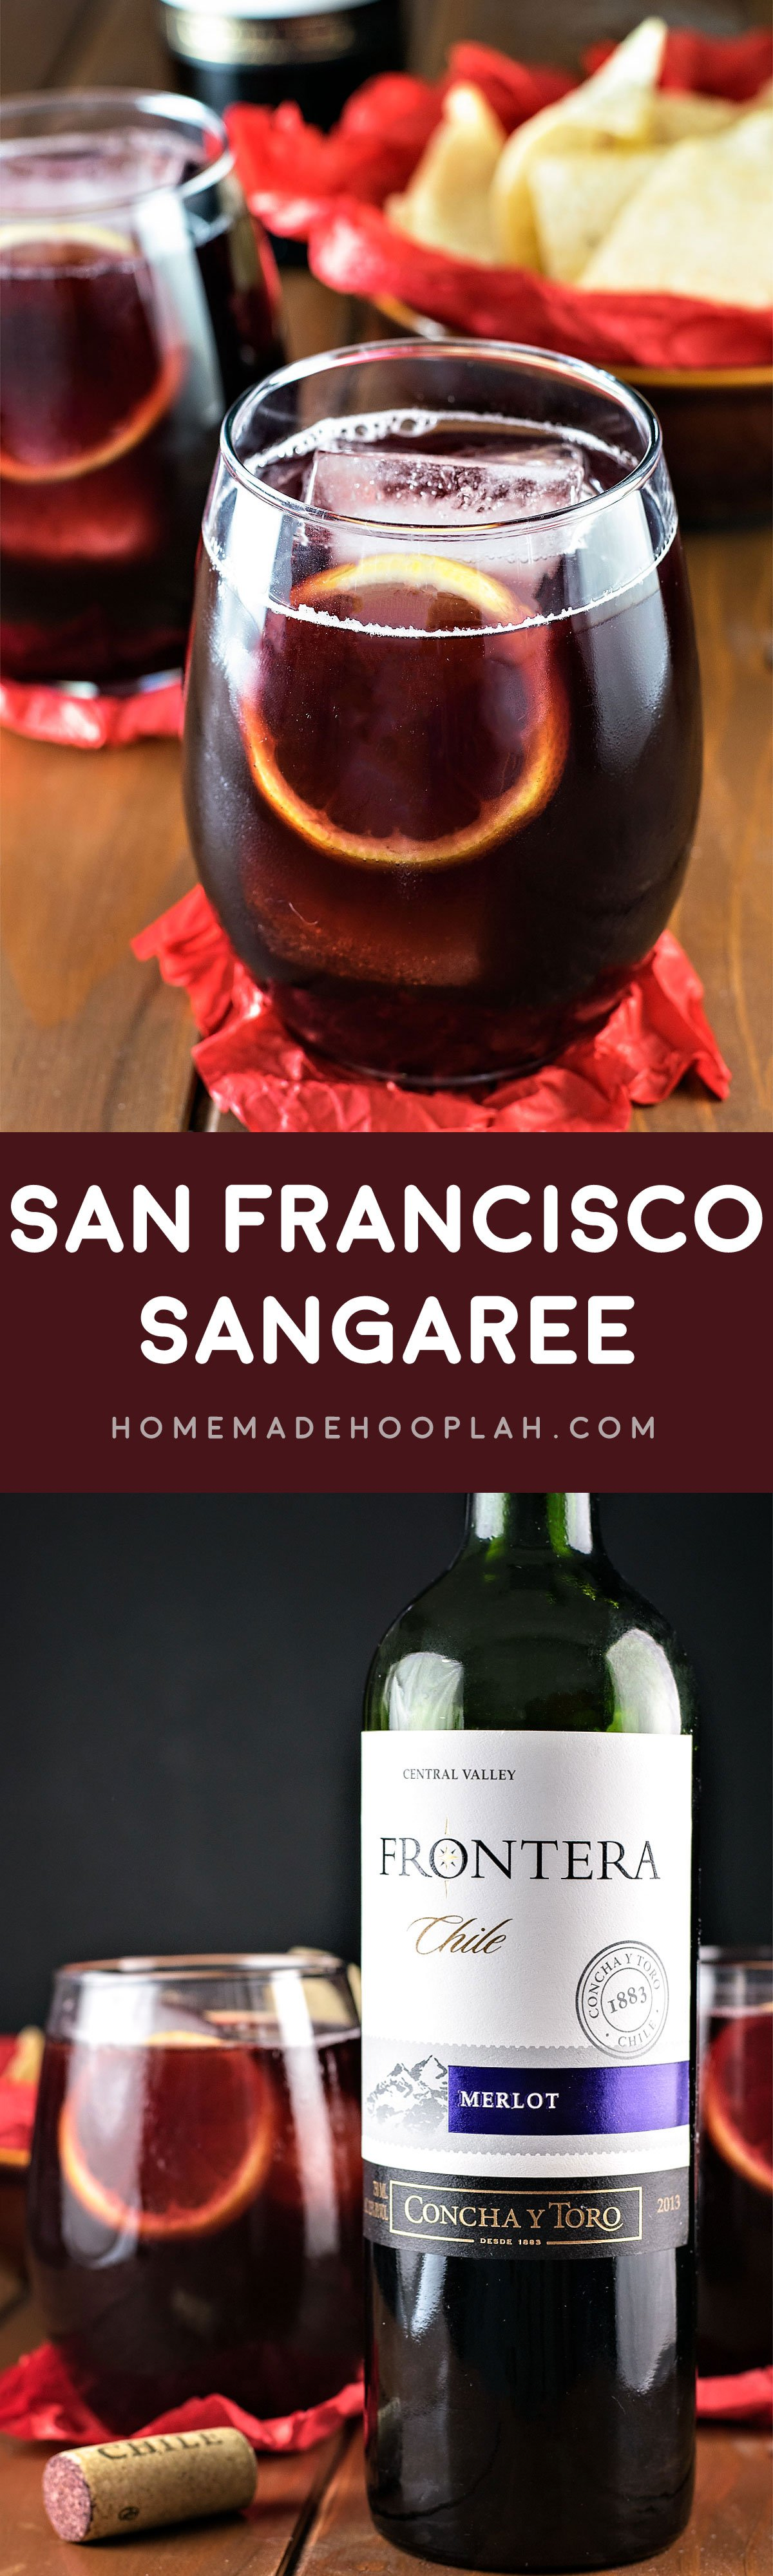 san francisco sangaree a bold and tartly sweet wine cocktail made with frontera wines the. Black Bedroom Furniture Sets. Home Design Ideas